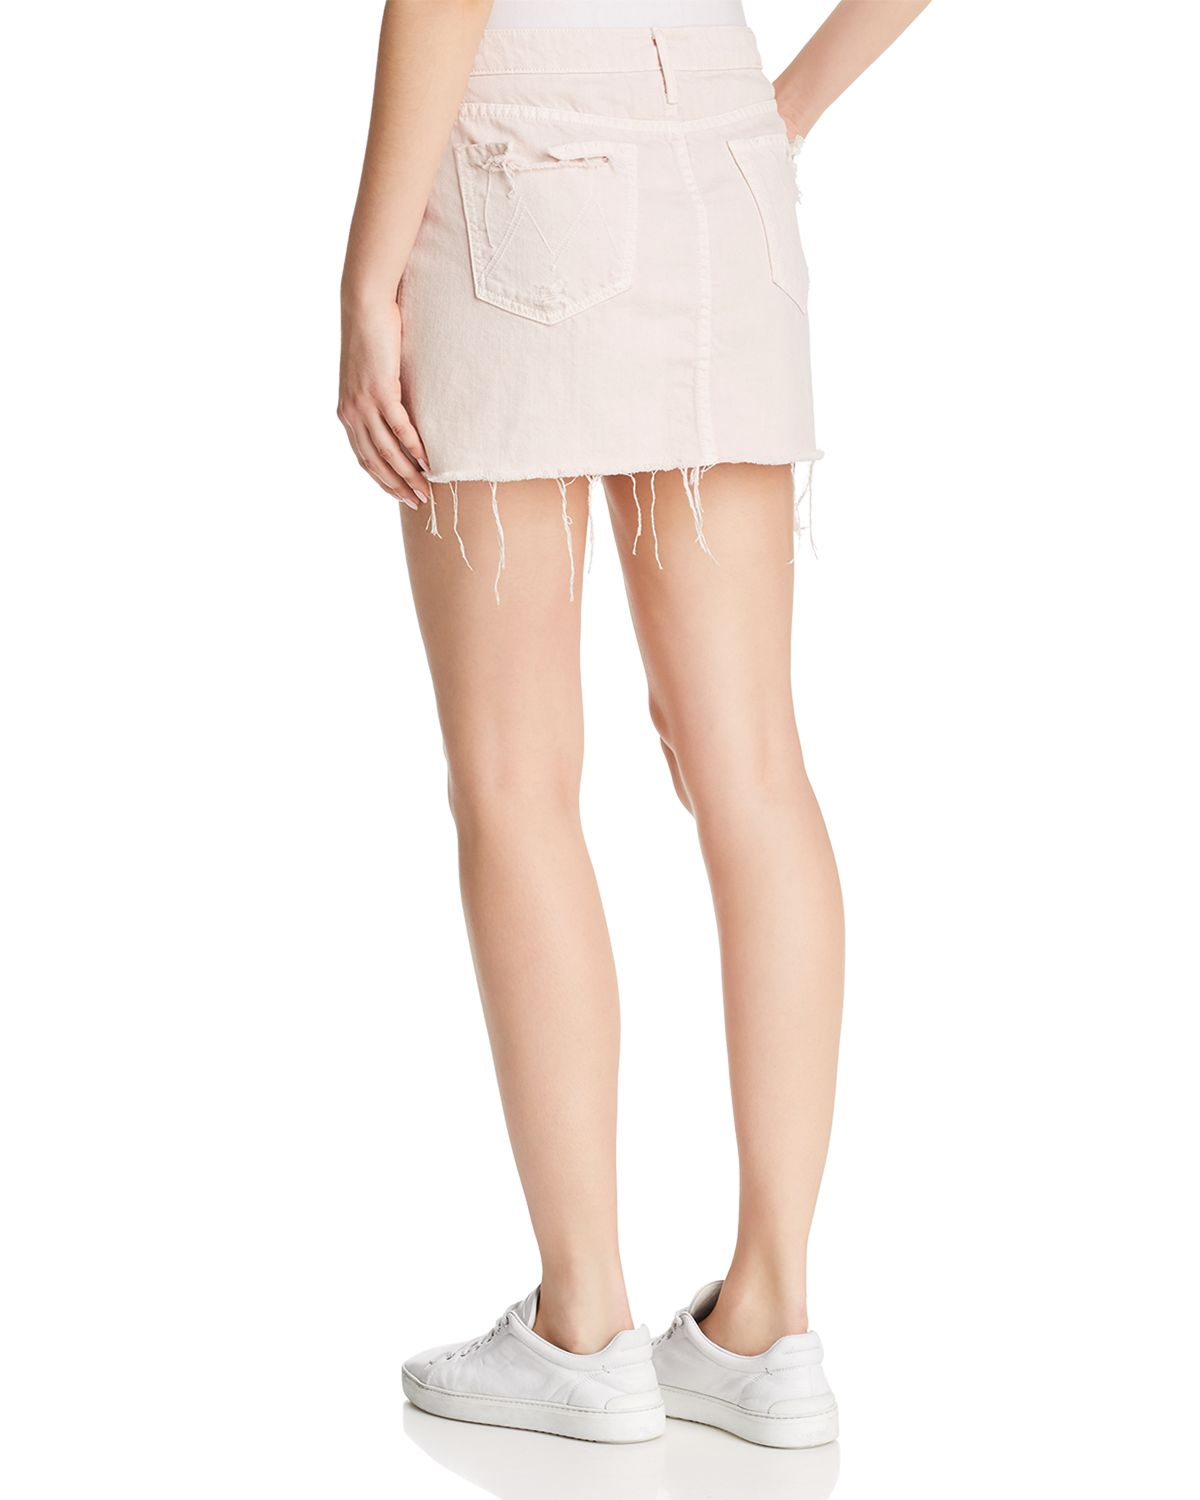 The Vagabond Distressed Frayed Denim Mini Skirt by Mother